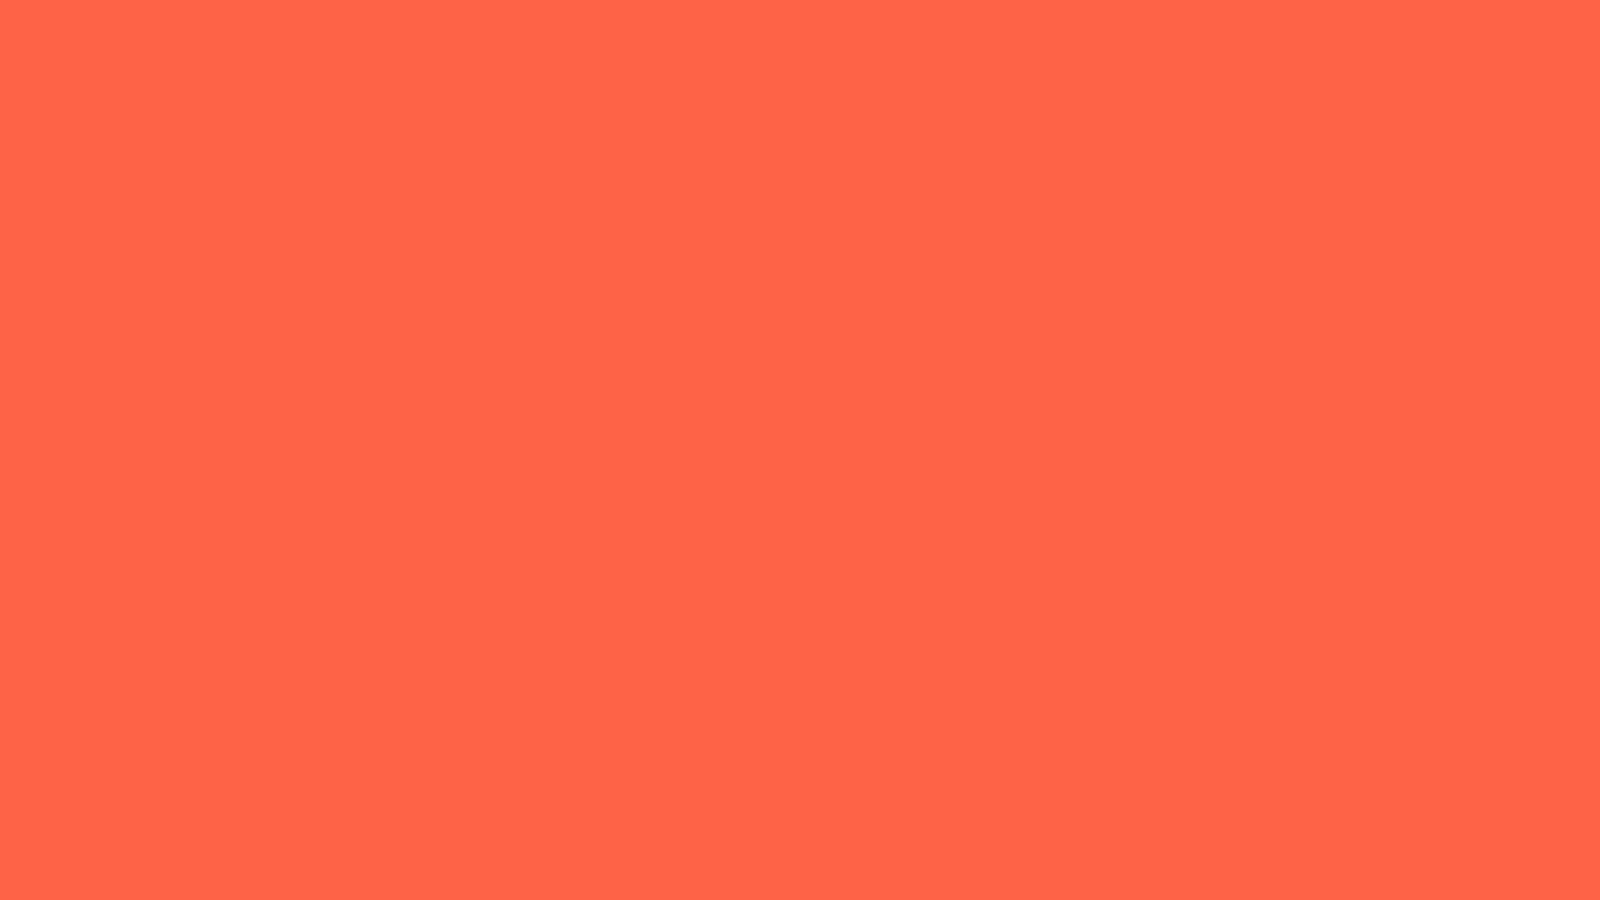 1600x900 Tomato Solid Color Background